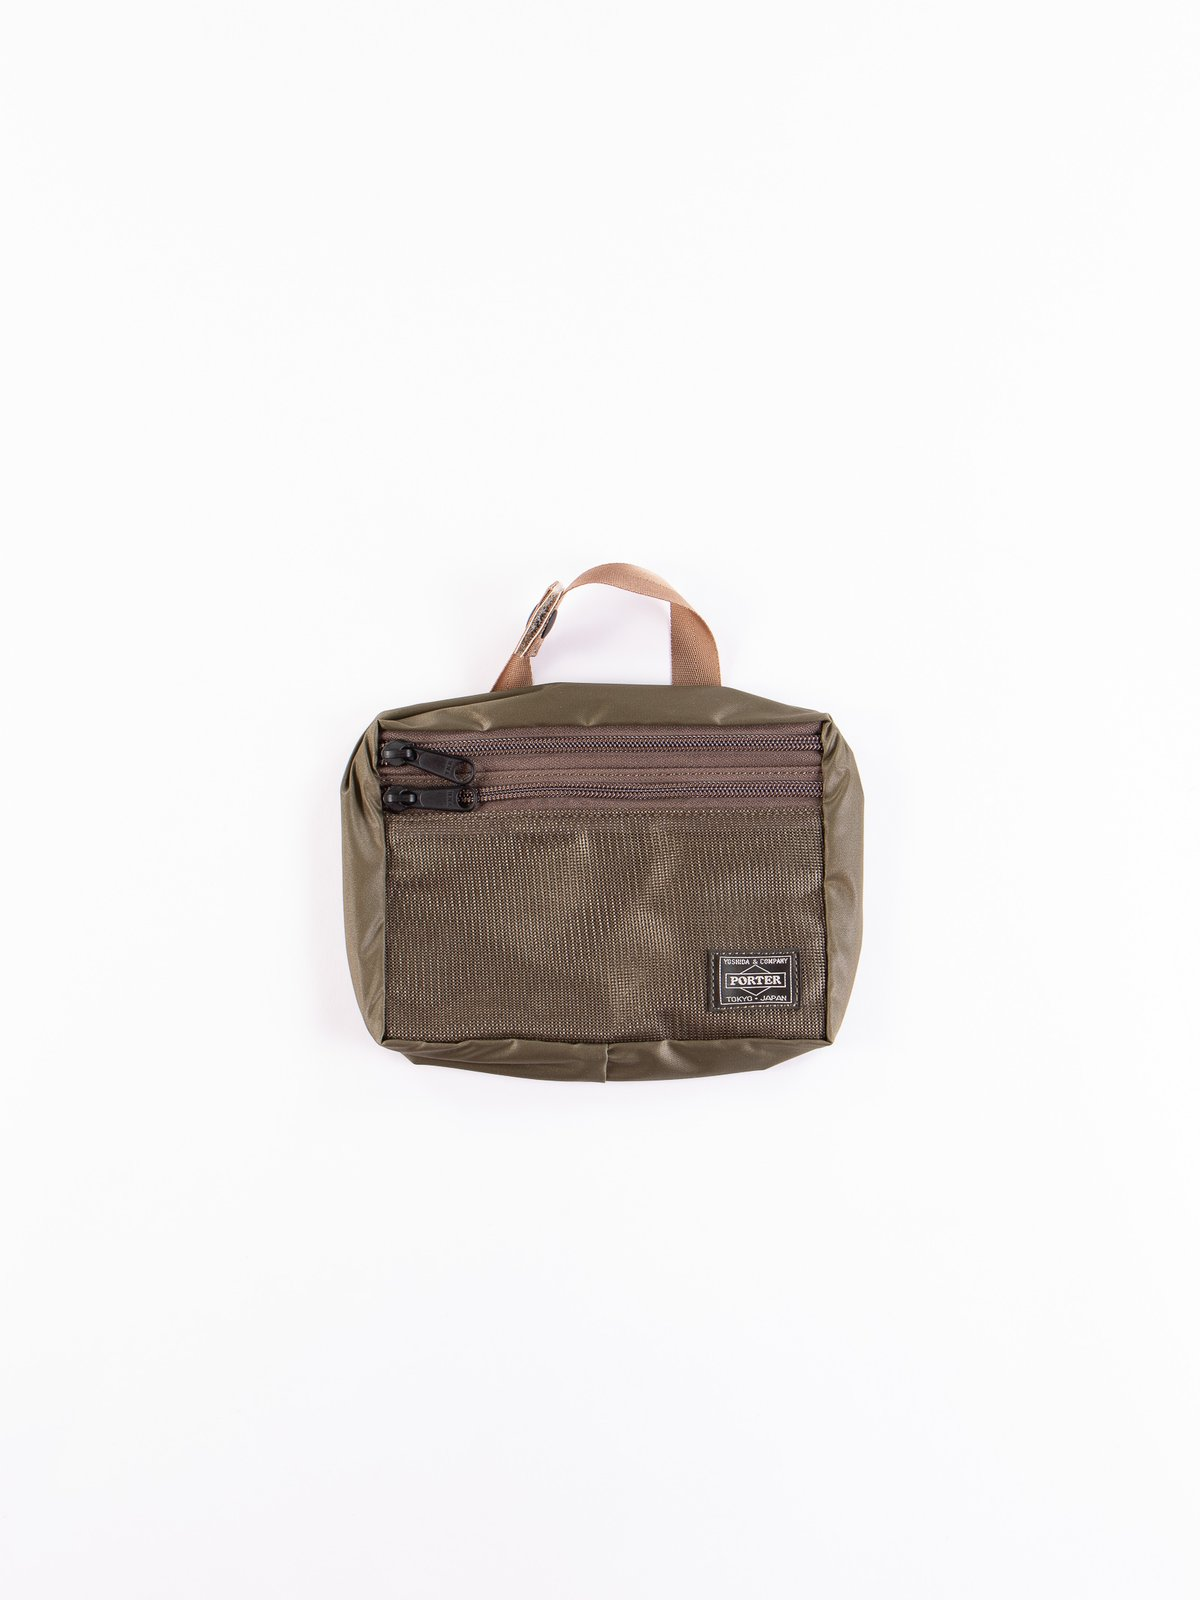 Olive Drab Snack Pack 09812 Pouch Large - Image 4